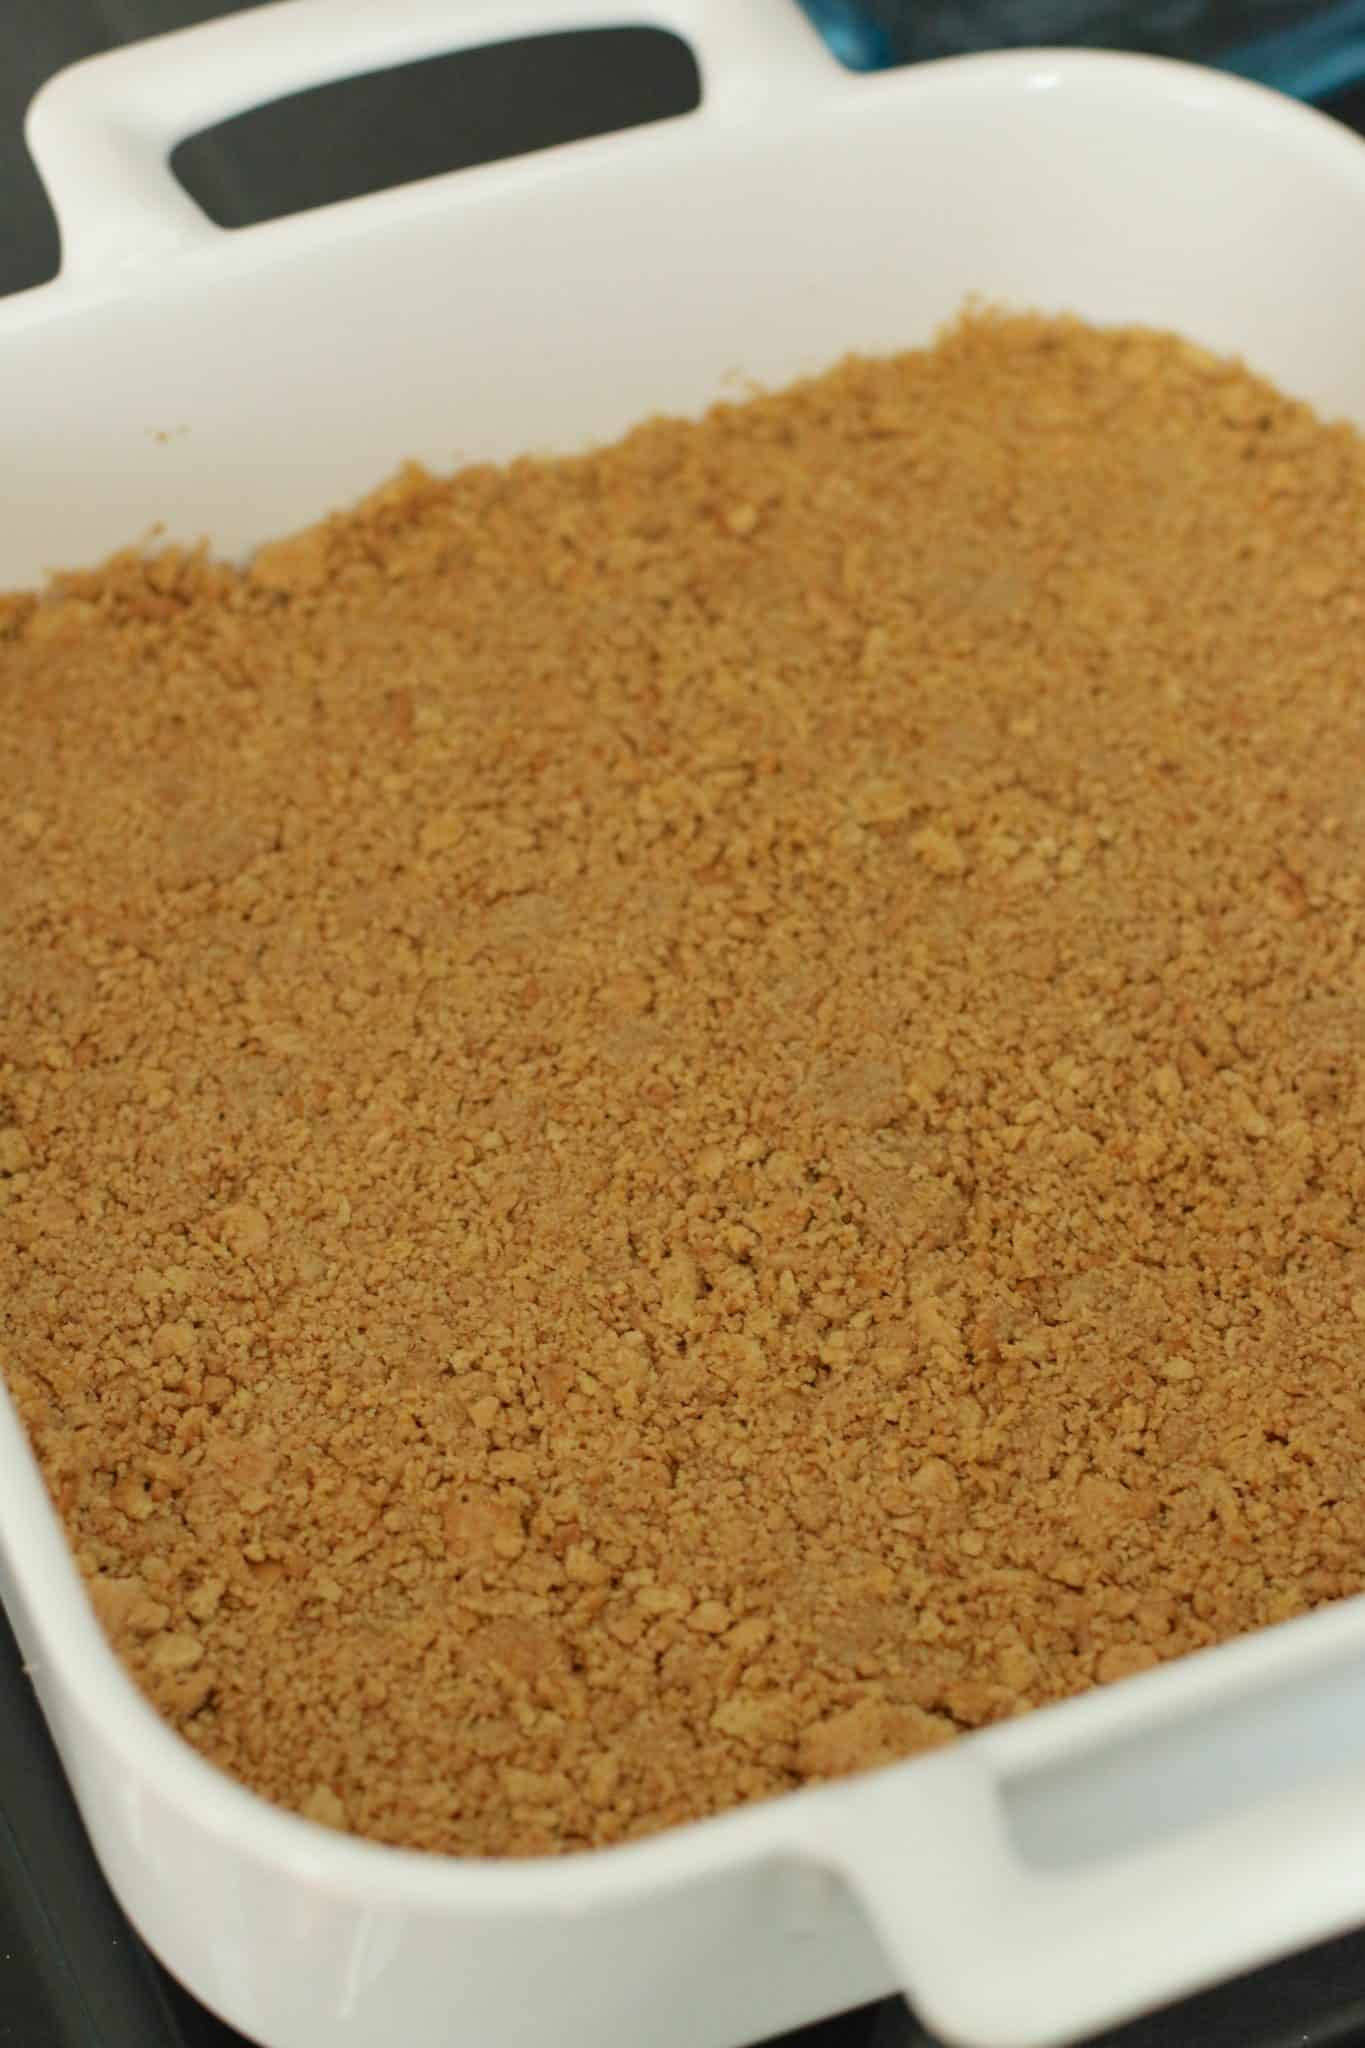 baked graham cracker crumb in the bottom of a square, white baking dish